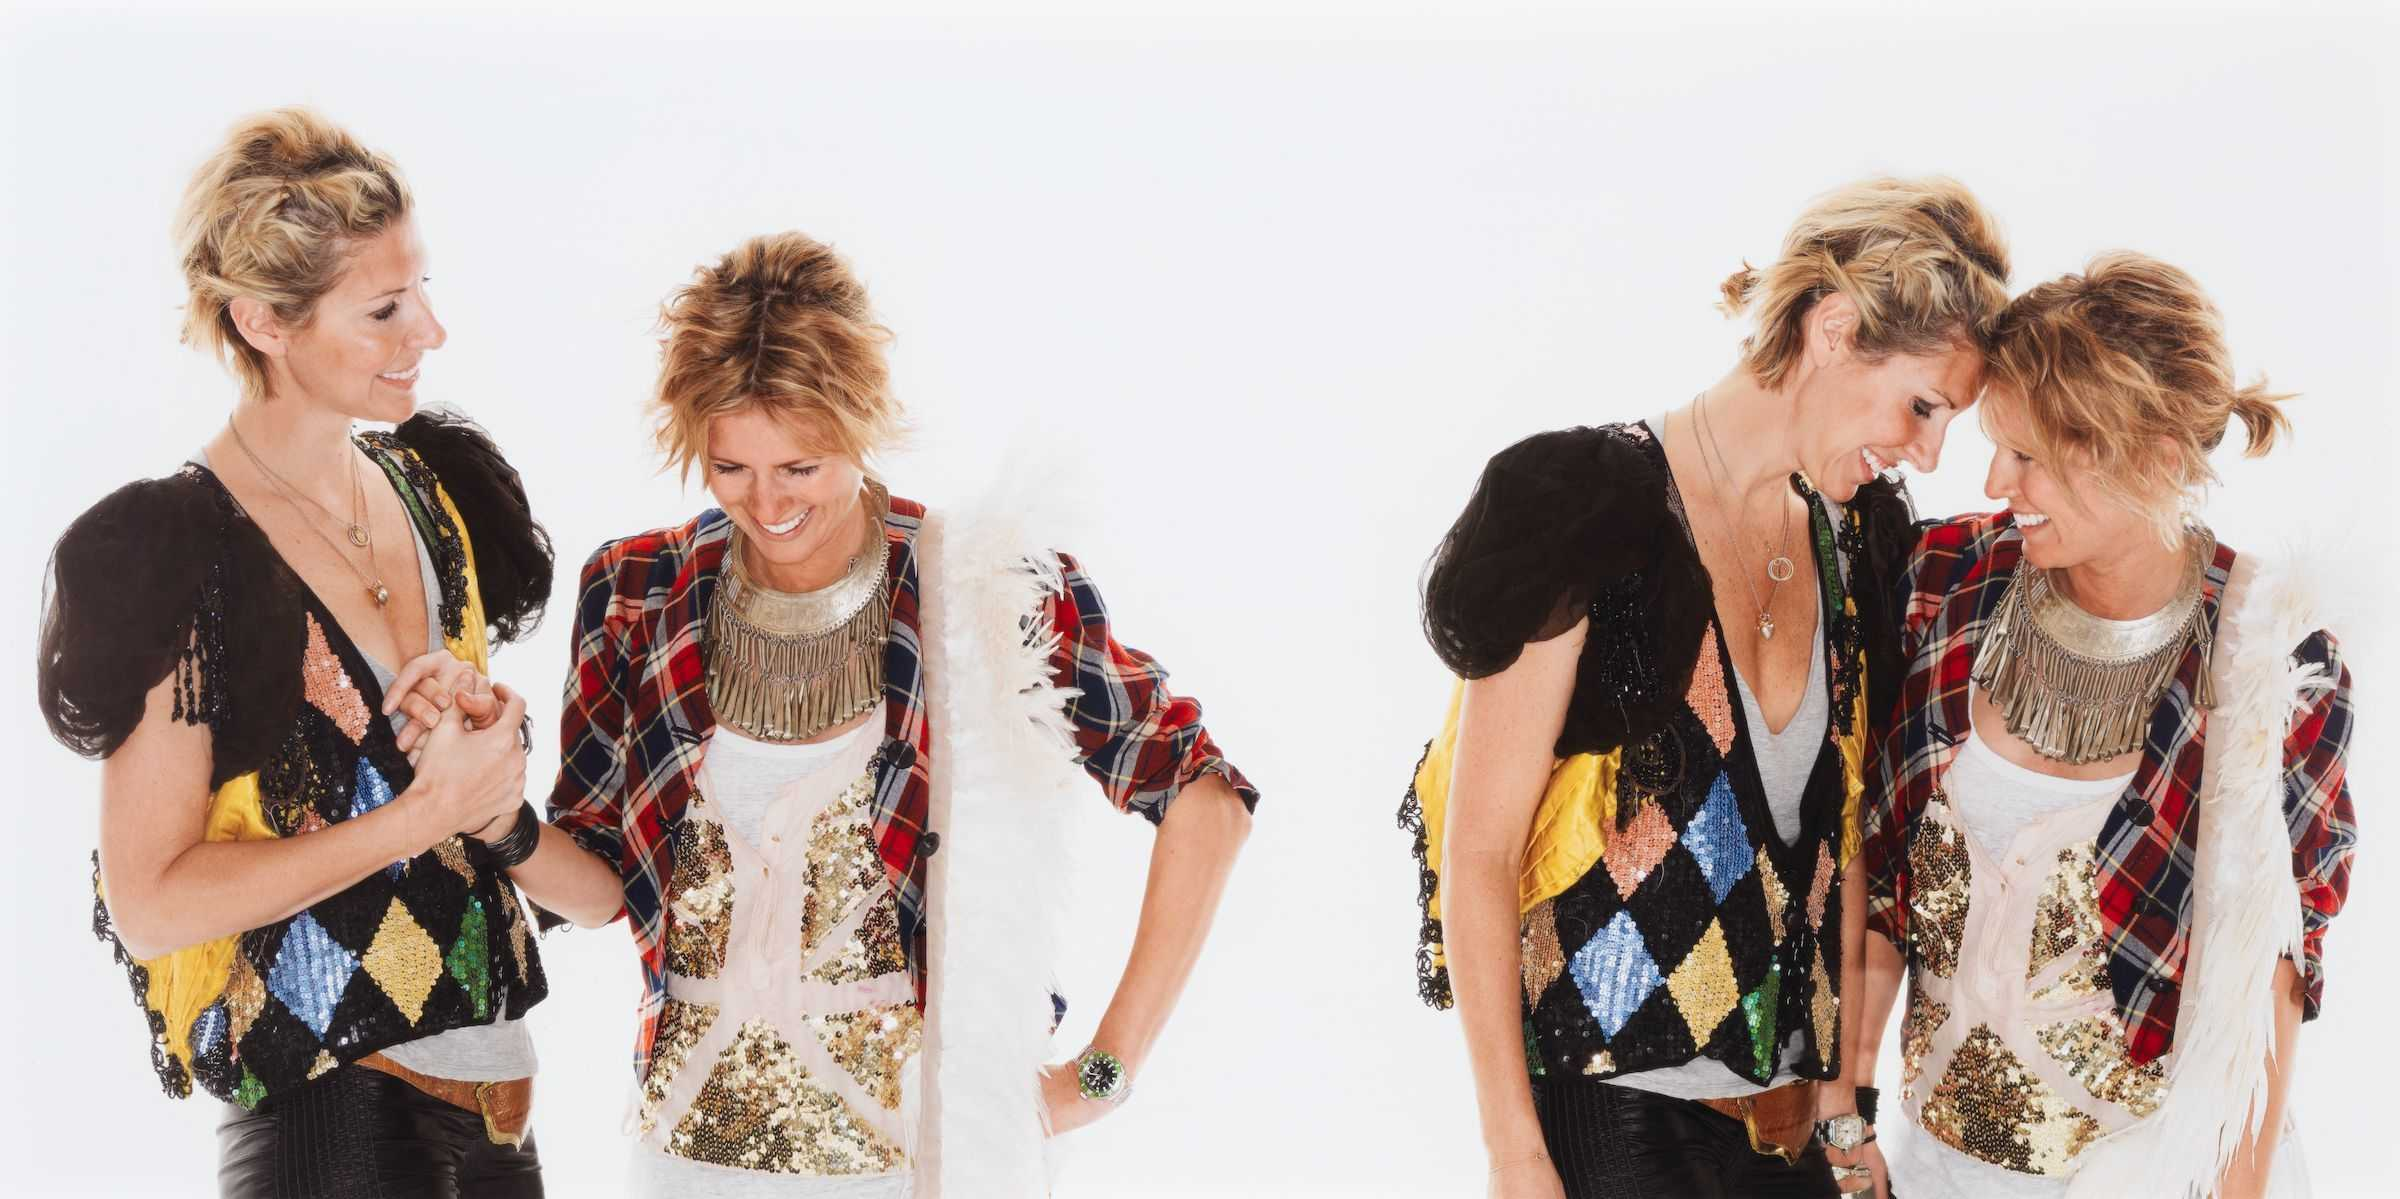 Portrait of Heidi Middleton and Sarah-Jane Clarke (Sass & Bide), 2008 by Deborah Paauwe